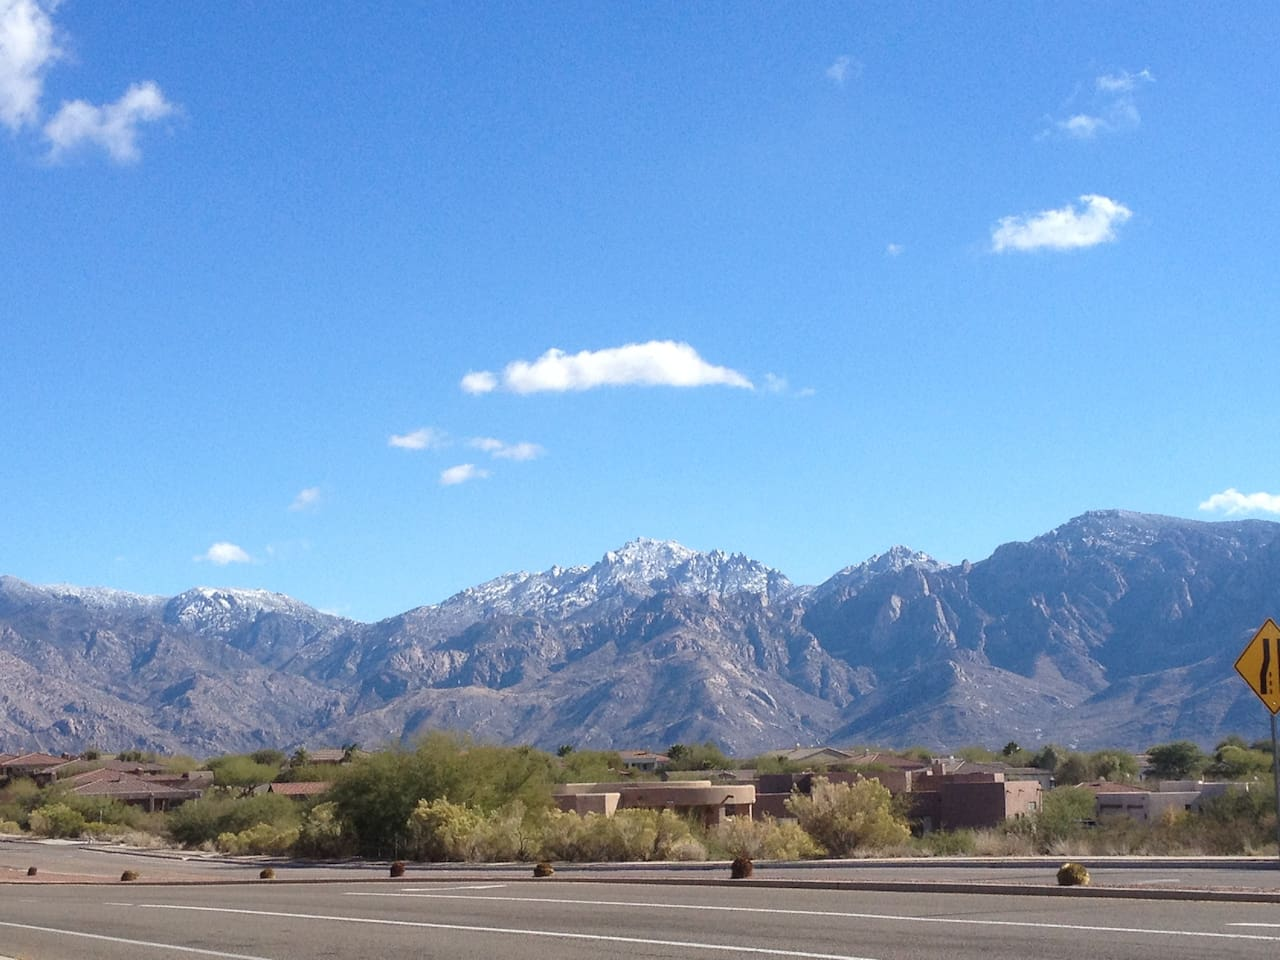 View of the Catalinas after a cold snap